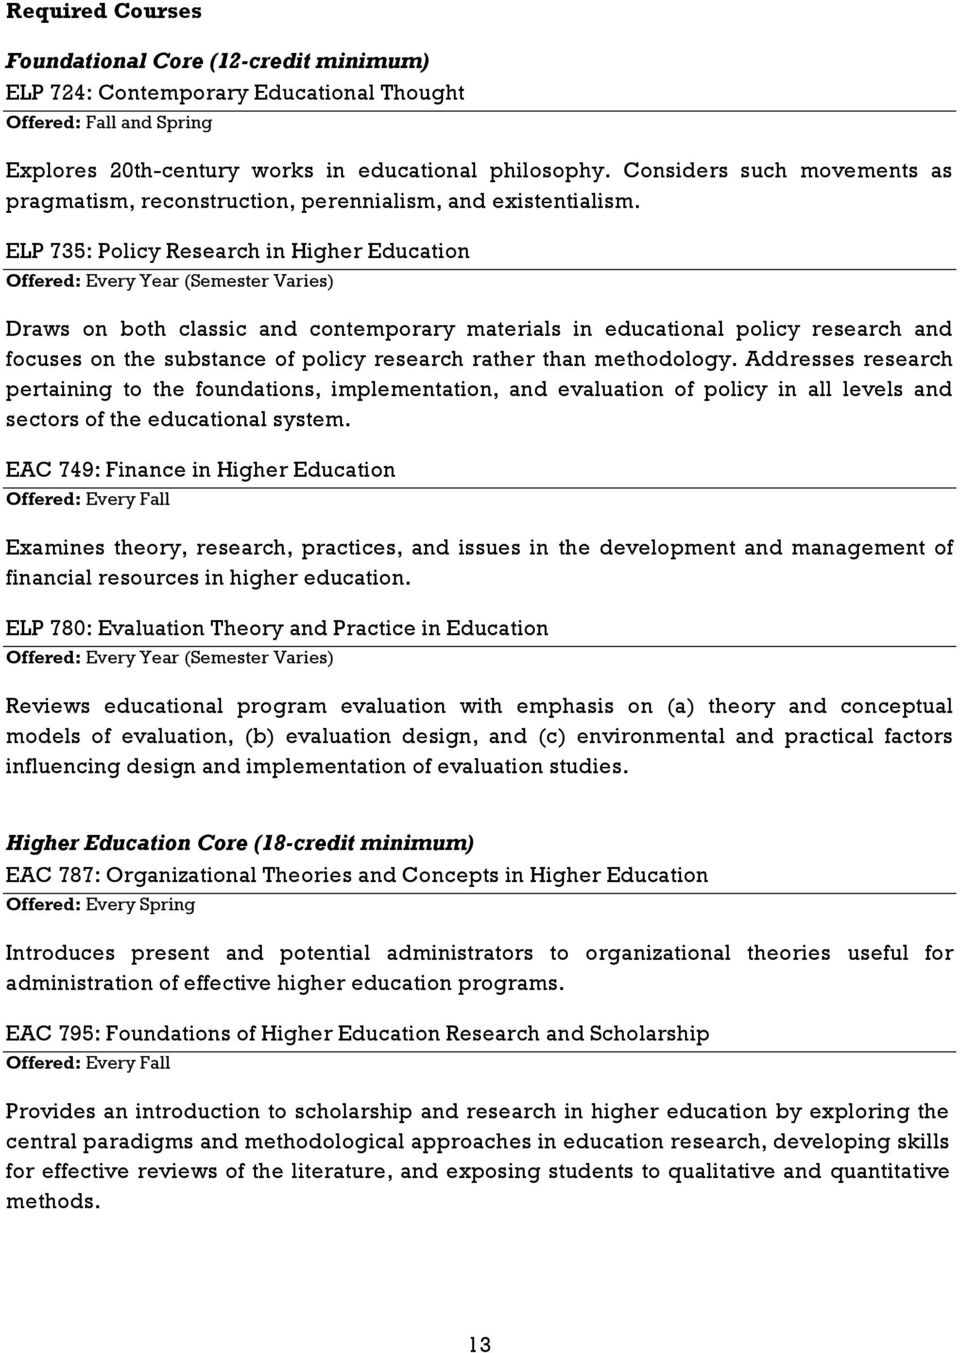 ELP 735: Policy Research in Higher Education Offered: Every Year (Semester Varies) Draws on both classic and contemporary materials in educational policy research and focuses on the substance of